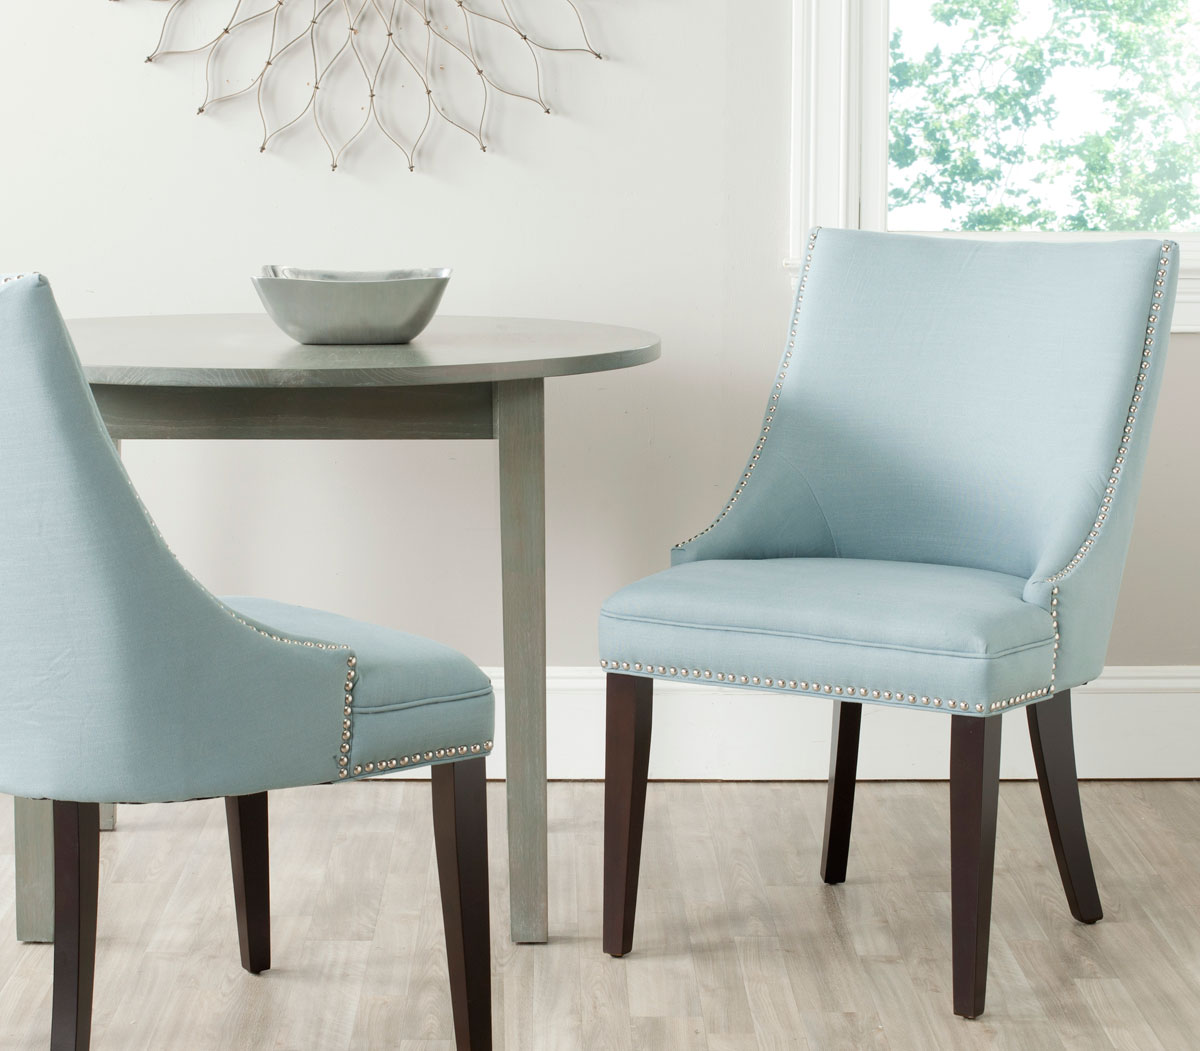 Safavieh Furniture: MCR4715A-SET2 Dining Chairs